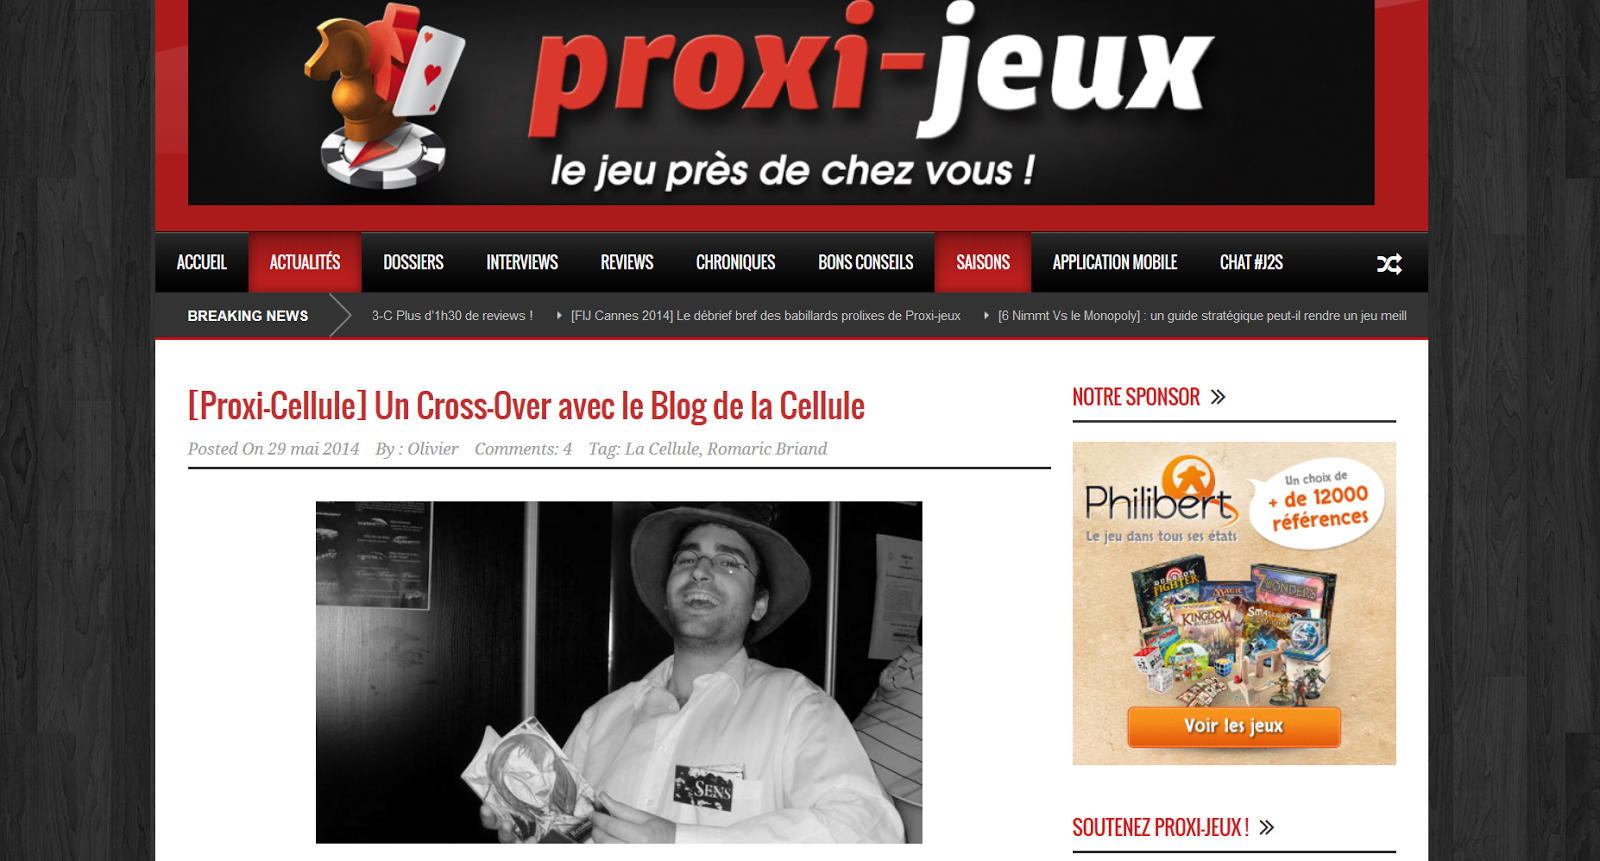 http://podcast.proxi-jeux.fr/2014/05/proxi-cellule-un-cross-over-avec-le-blog-de-la-cellule/